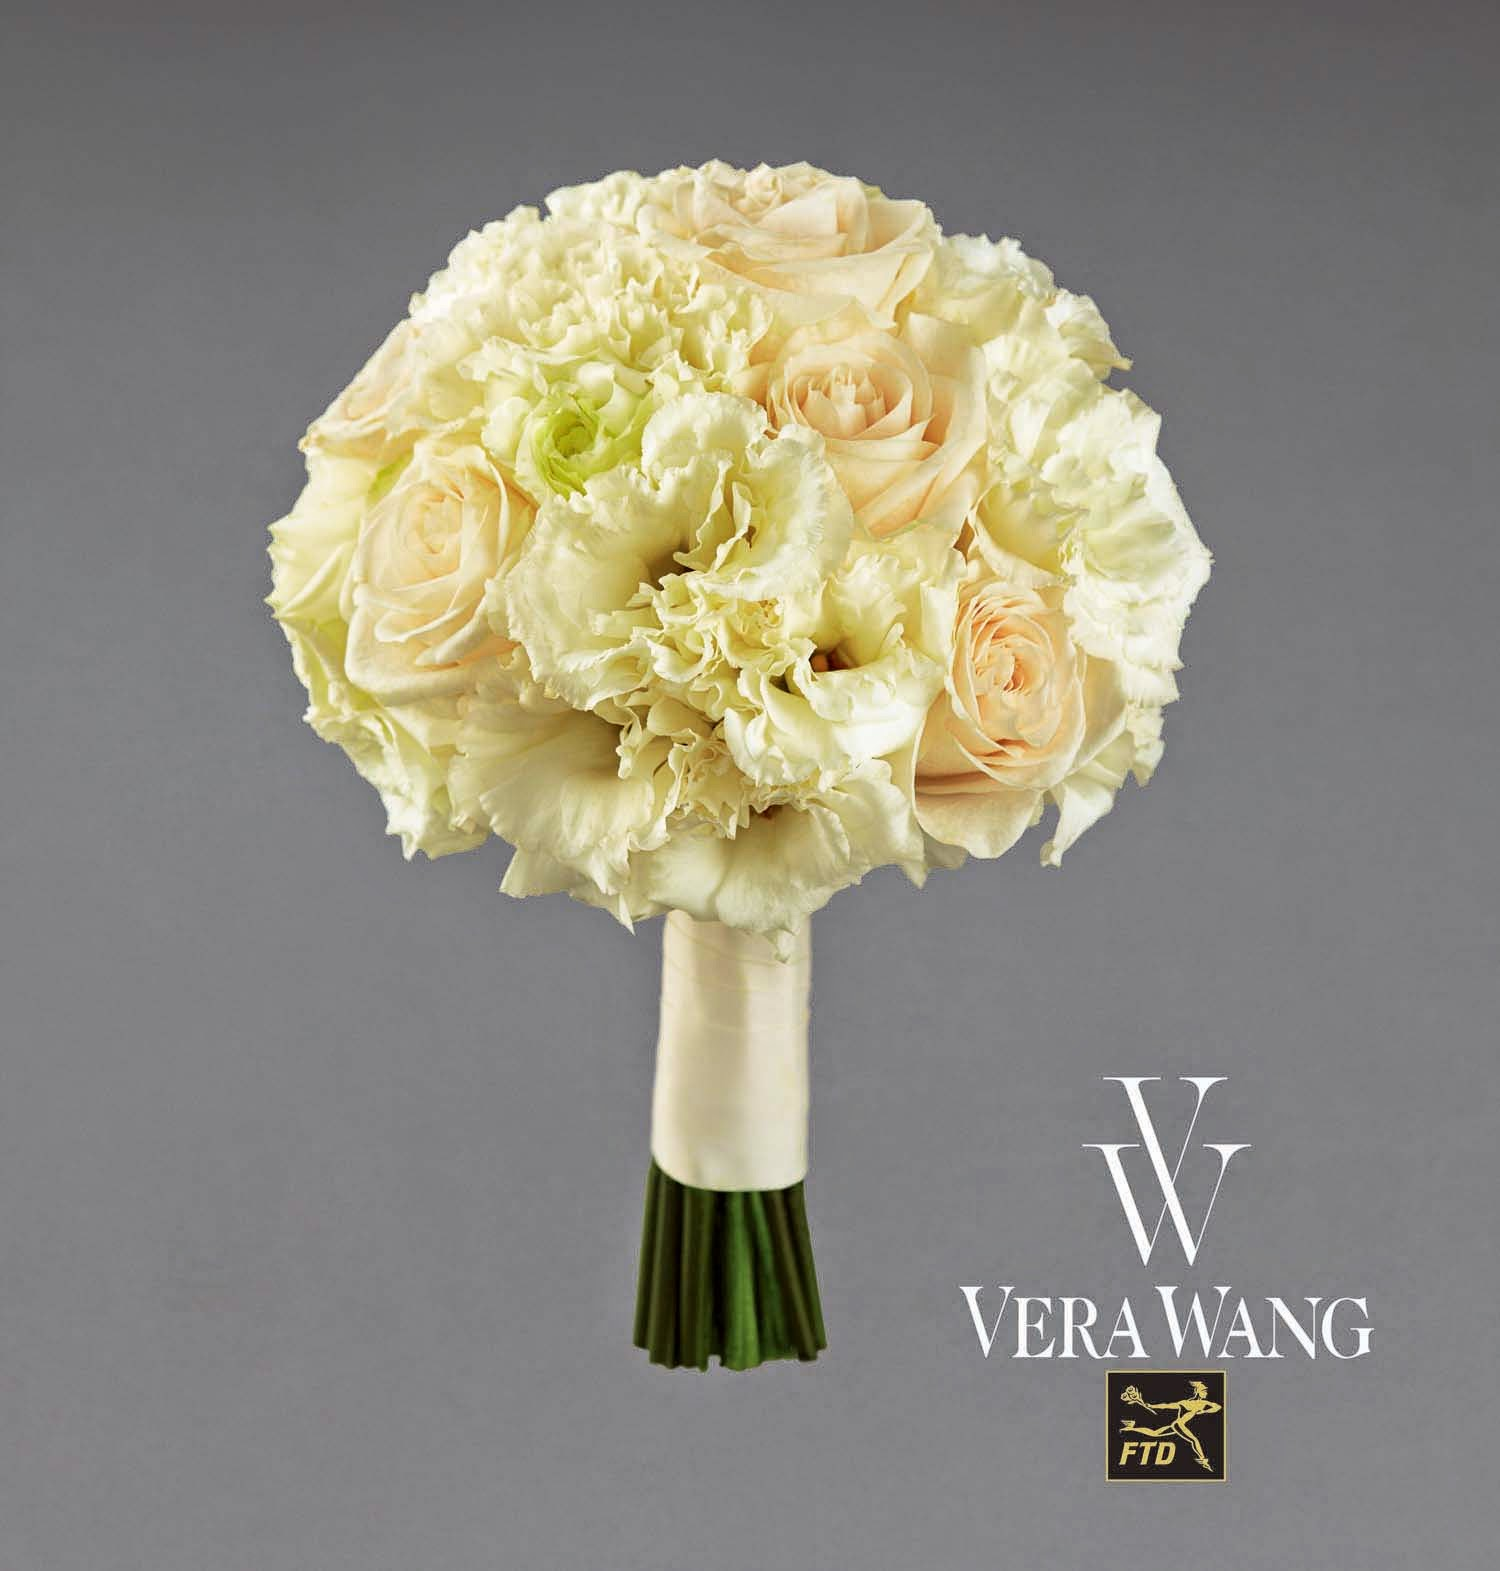 Vera Wang Collection at FTD.com